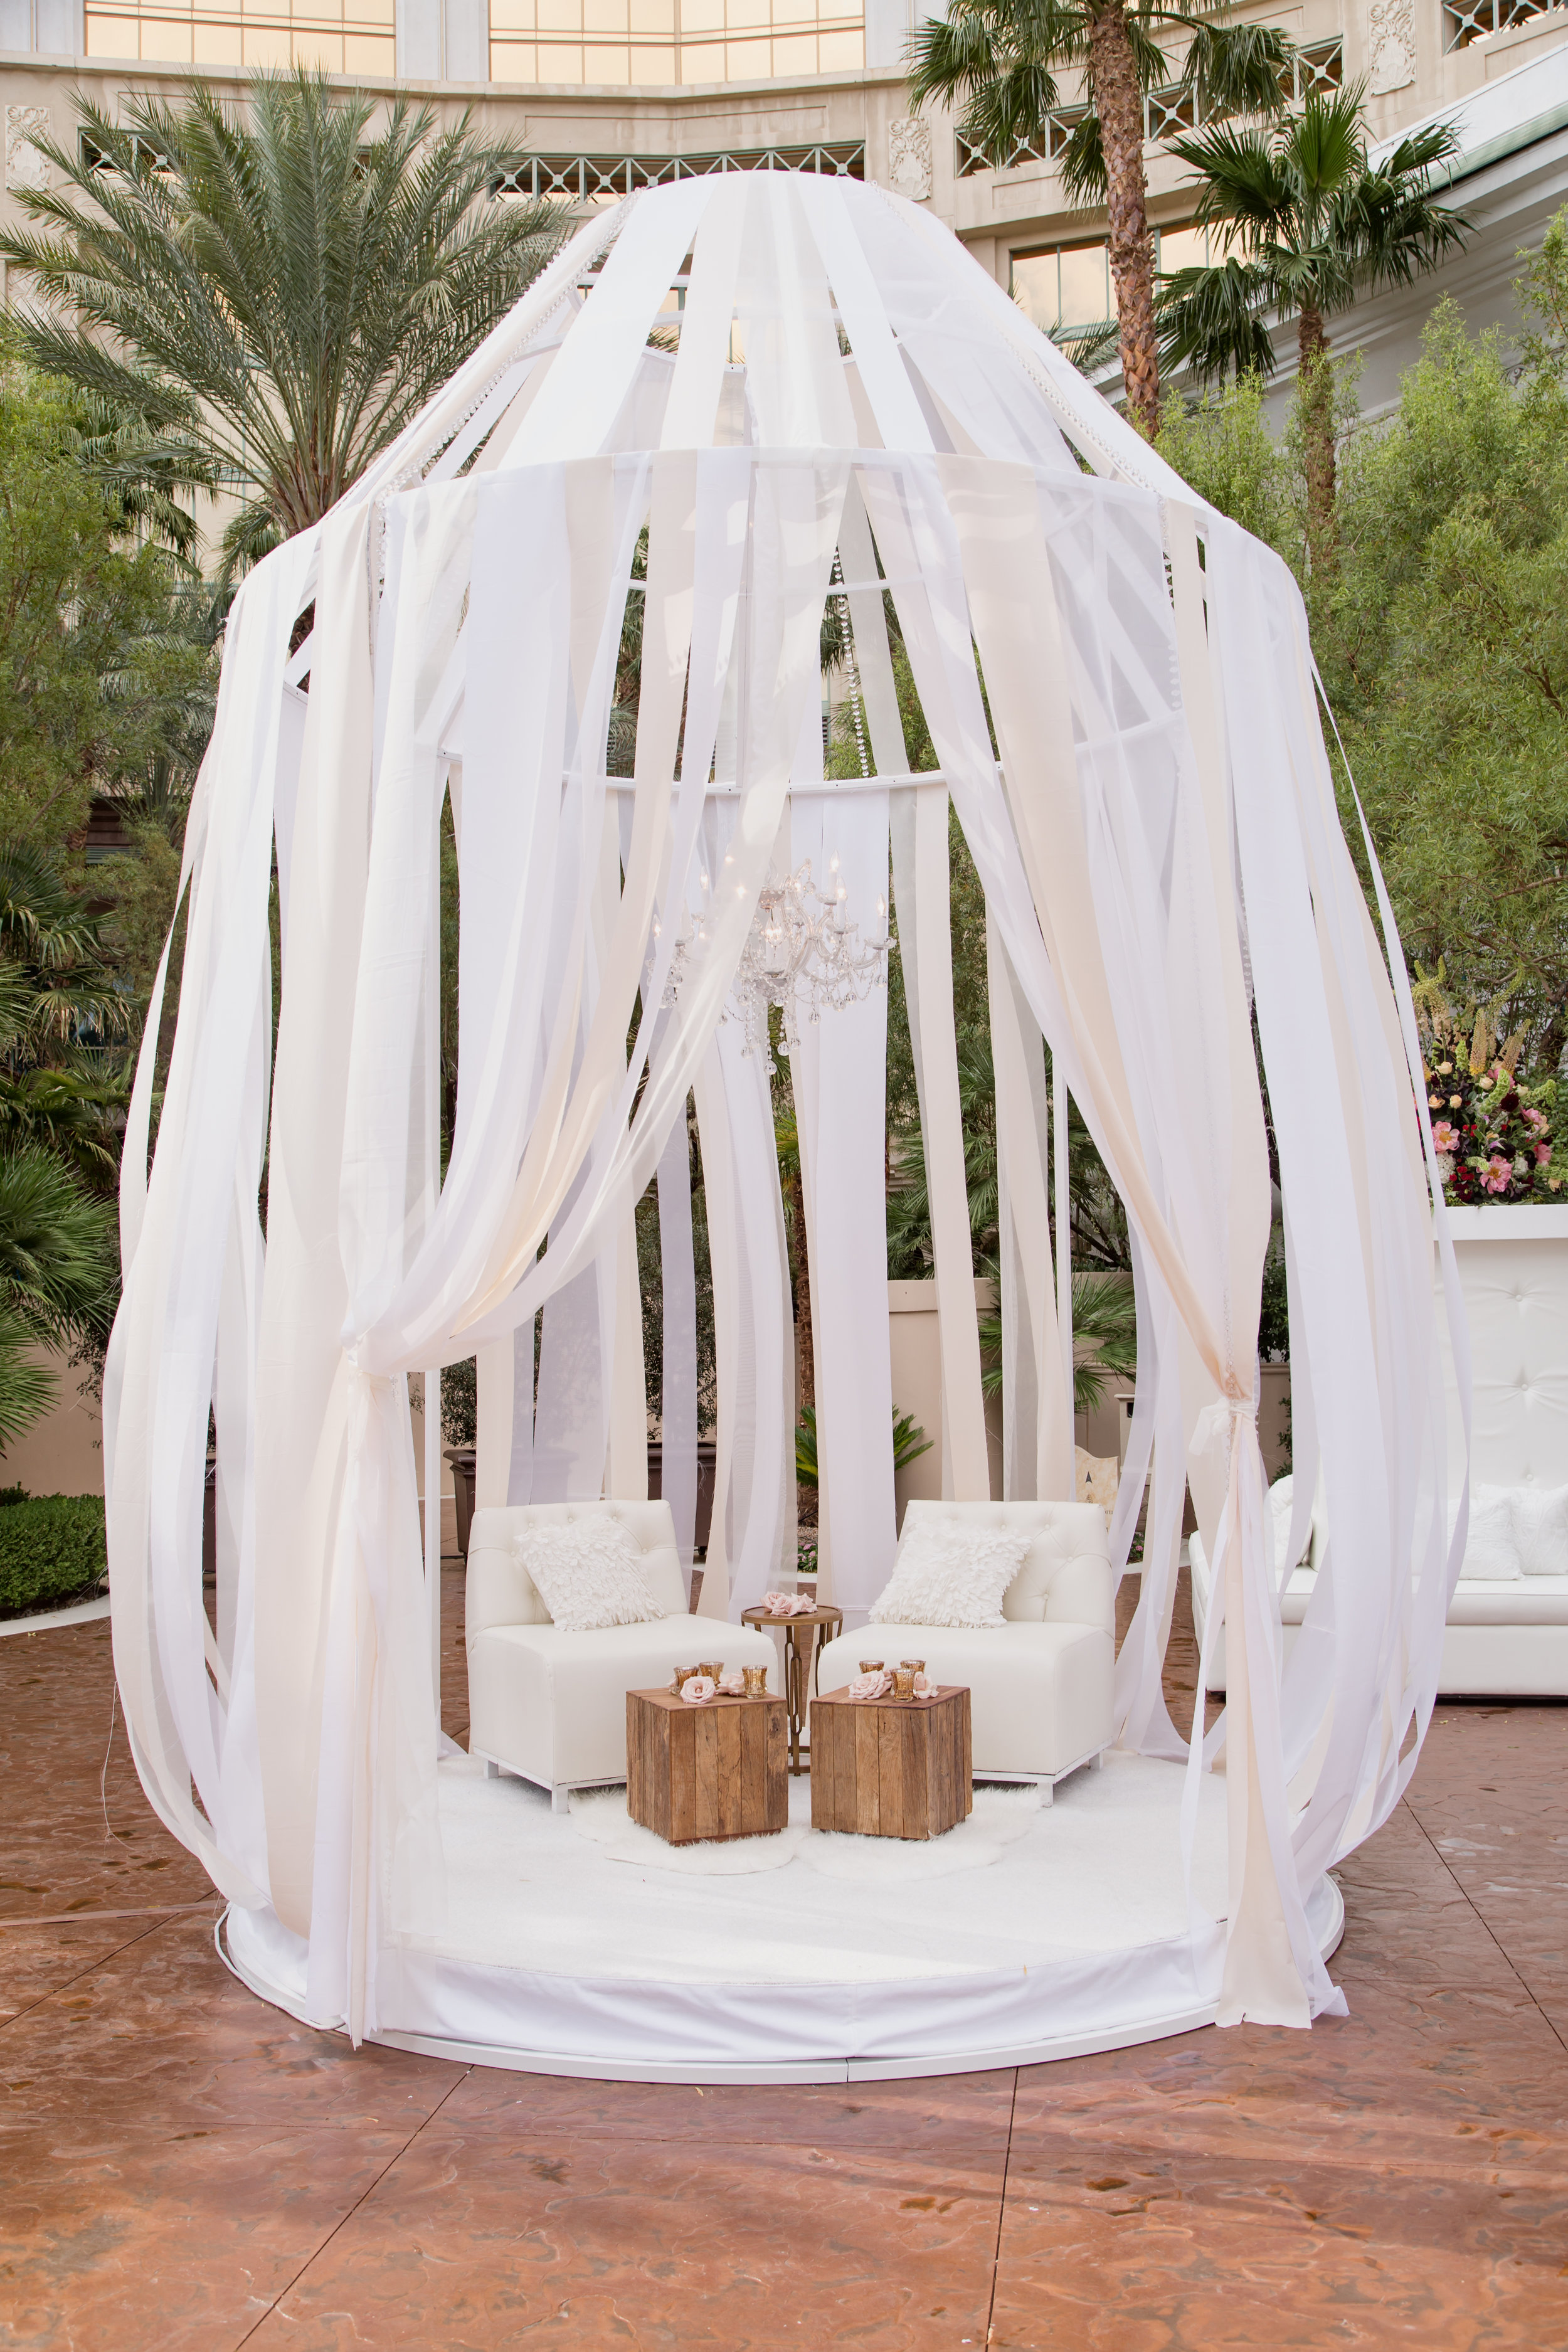 Ceremony birdcages with ribbons at luxury, upscale destination wedding.Destination Wedding Planner  Andrea Eppolito ·Photos by  Adam Frazier Photography ·Floral and Decor by  Destinations by Design · Lighting by  LED Unplugged ·Venue · Invitations  Ceci New York  · Menus by  Alligator Soup